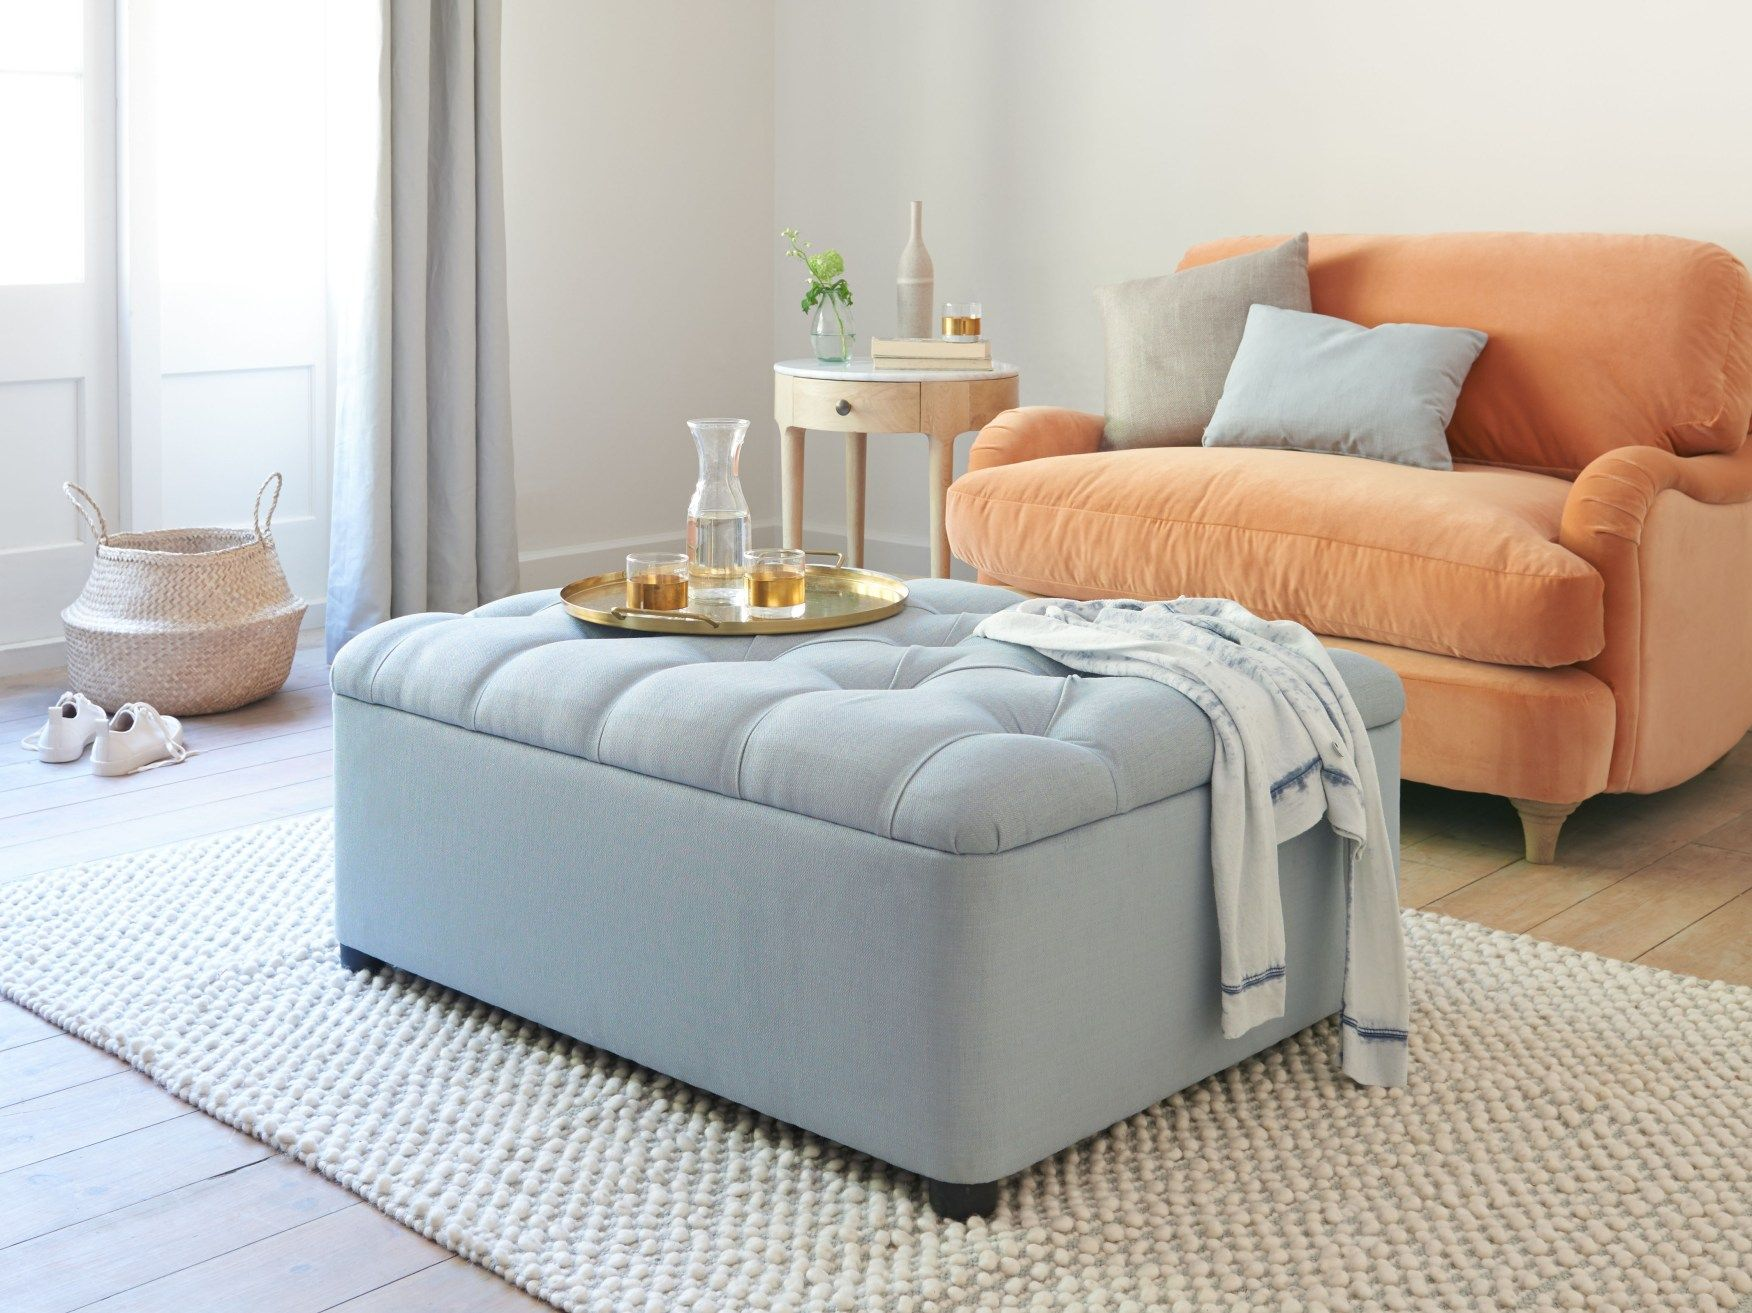 The Perfect Hidden Guest Bed Loaf Sofa bed for small